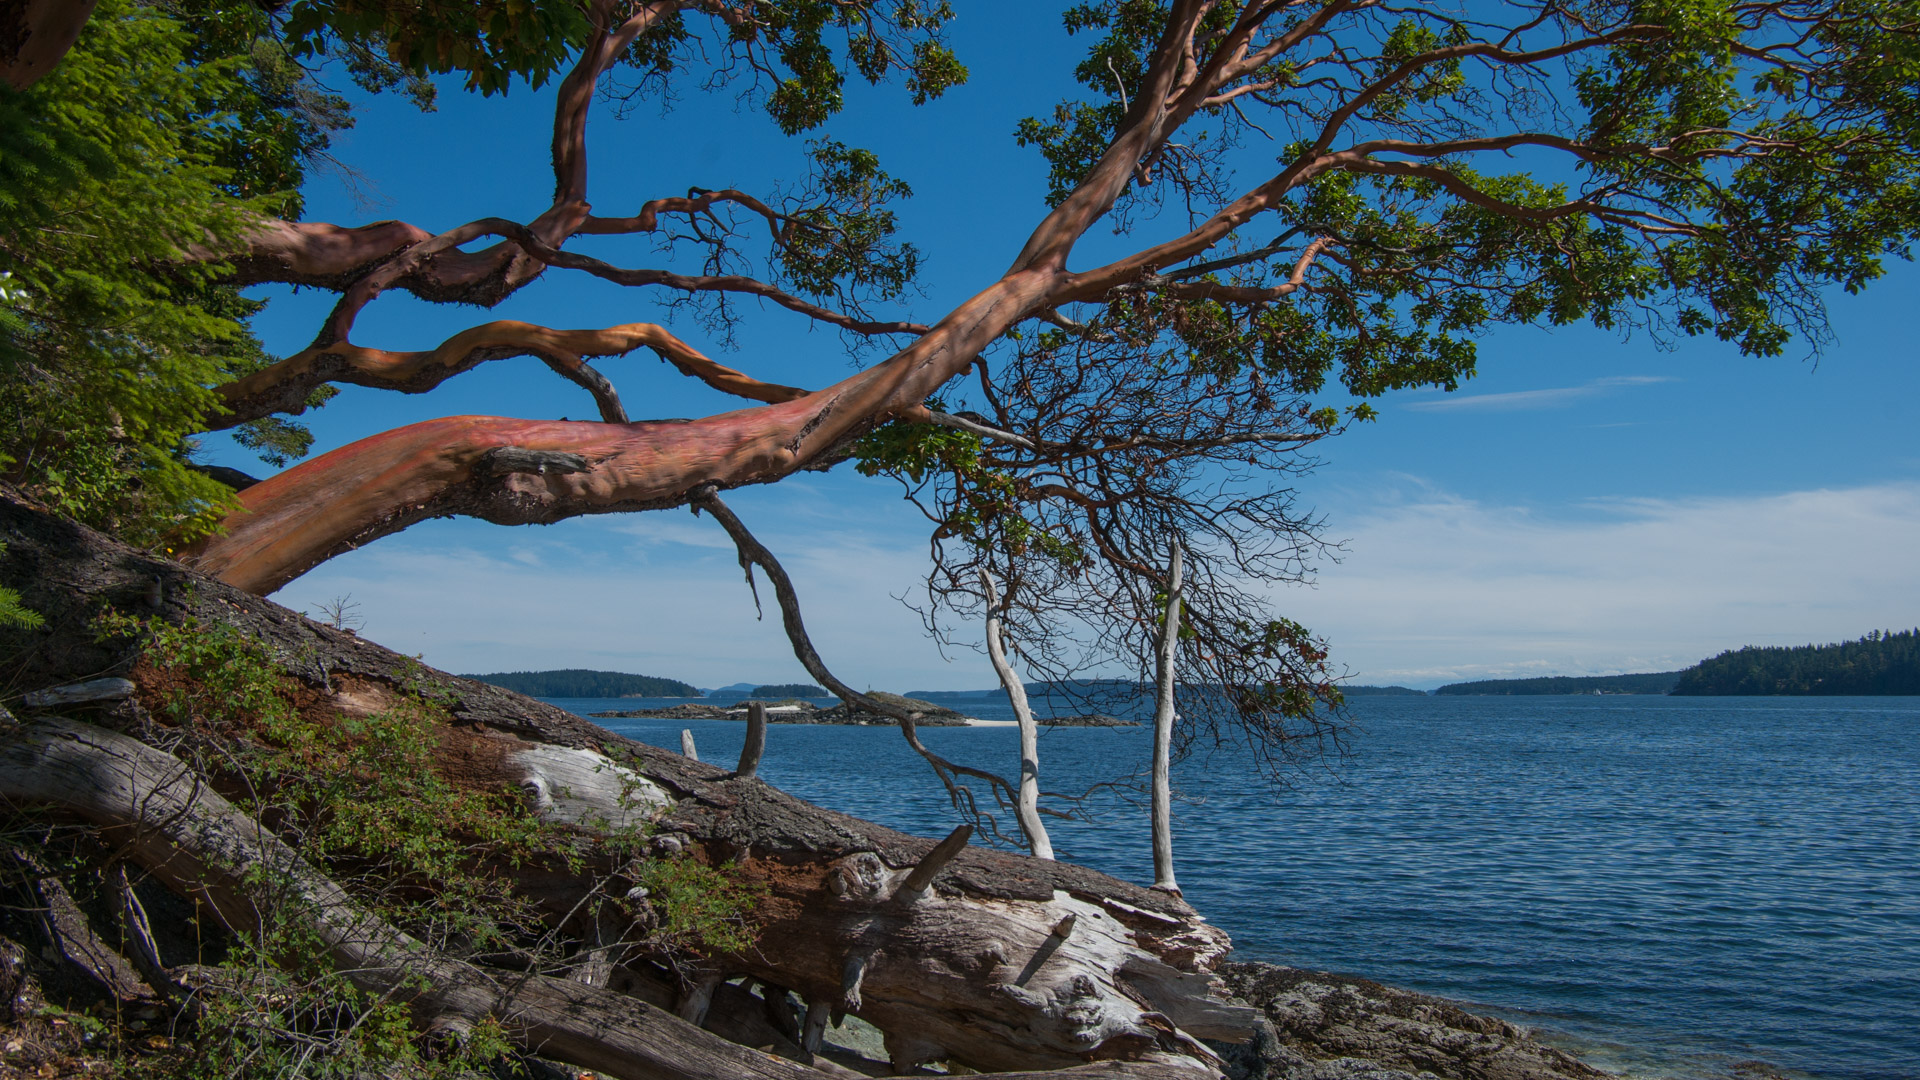 Tsawout First Nation Reserve, Salt Spring Island - Didier Delahaye